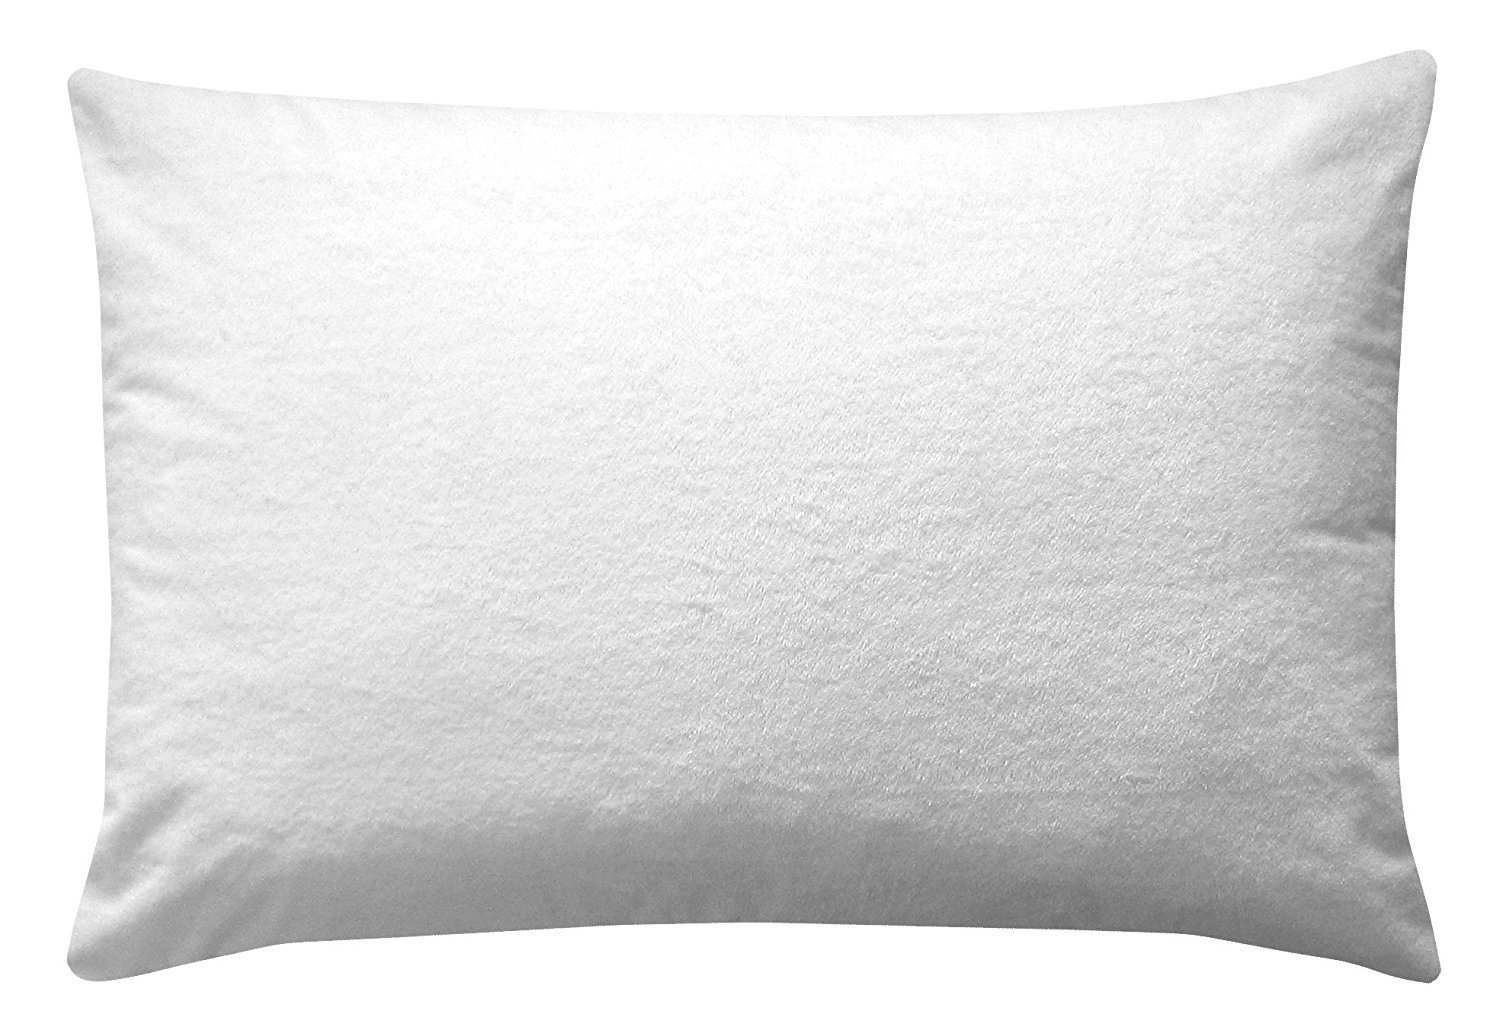 Levinsohn Terry Top Waterproof Pillow Protector Soft Cotton Blend Zip Closure 1 Pillow Cover, Standard, White FRE-149-XX-WHIT-07